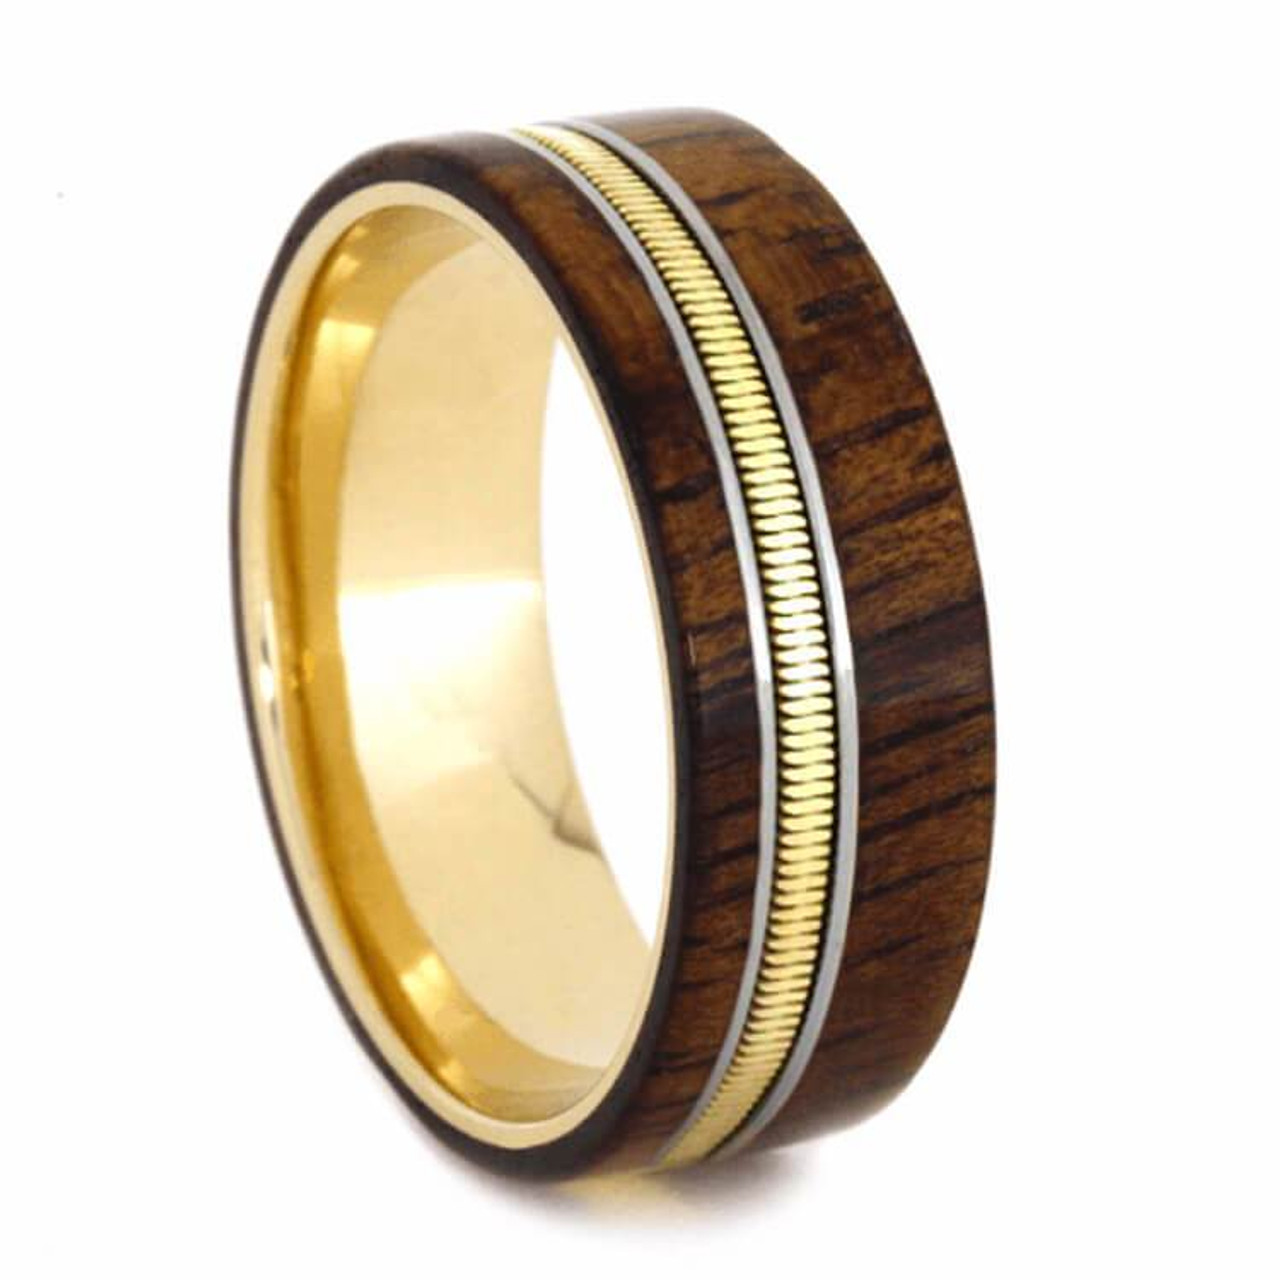 8 Mm Yellow Gold Bands Wood Inlay Guitar String Yg614m